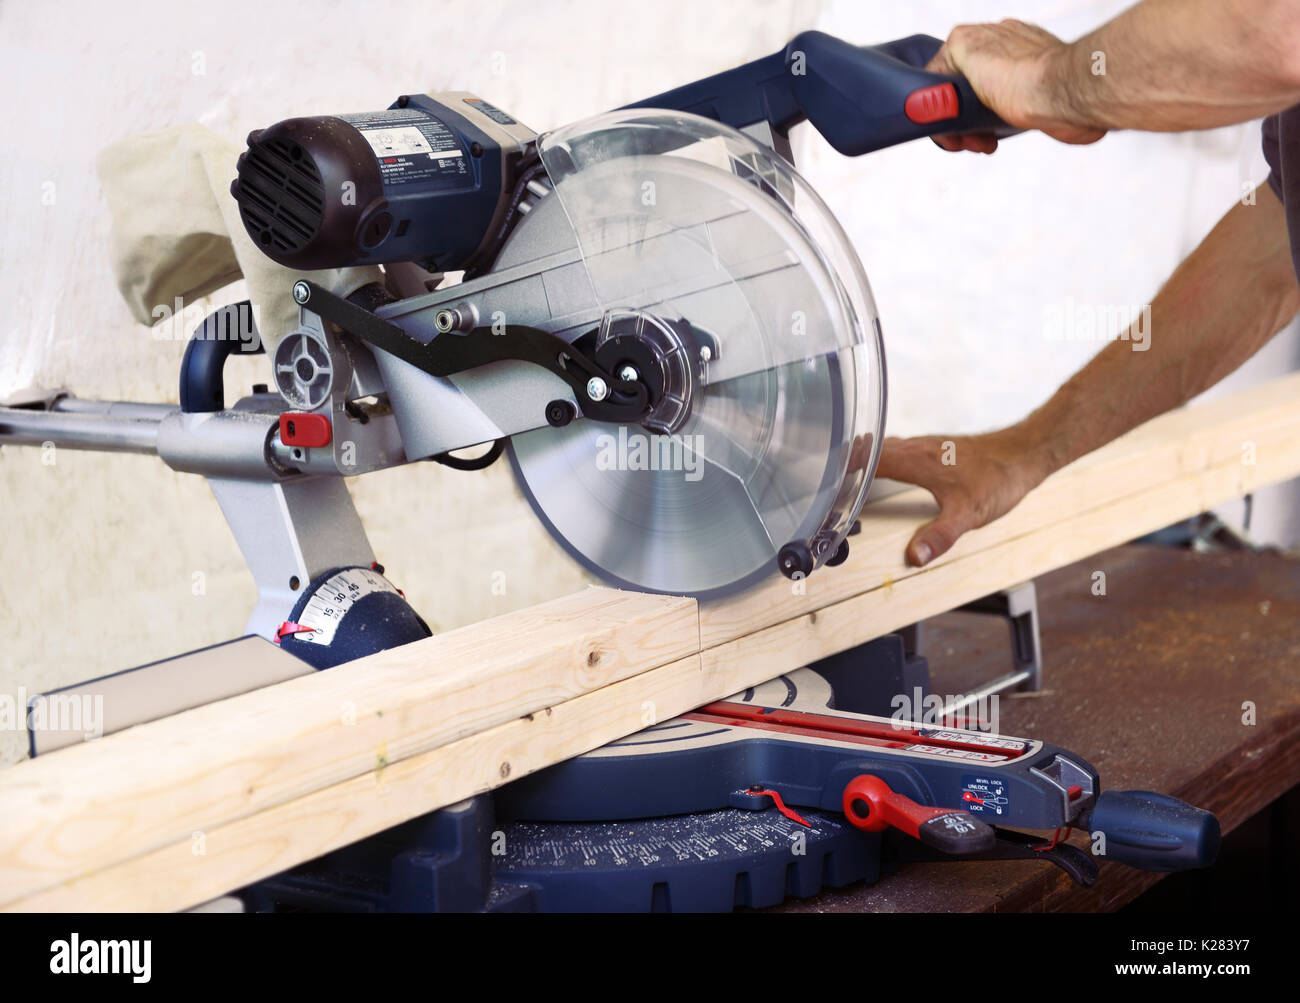 Closeup of hands of a person cutting wood lumber with a mitre saw, miter saw, circular blade. - Stock Image